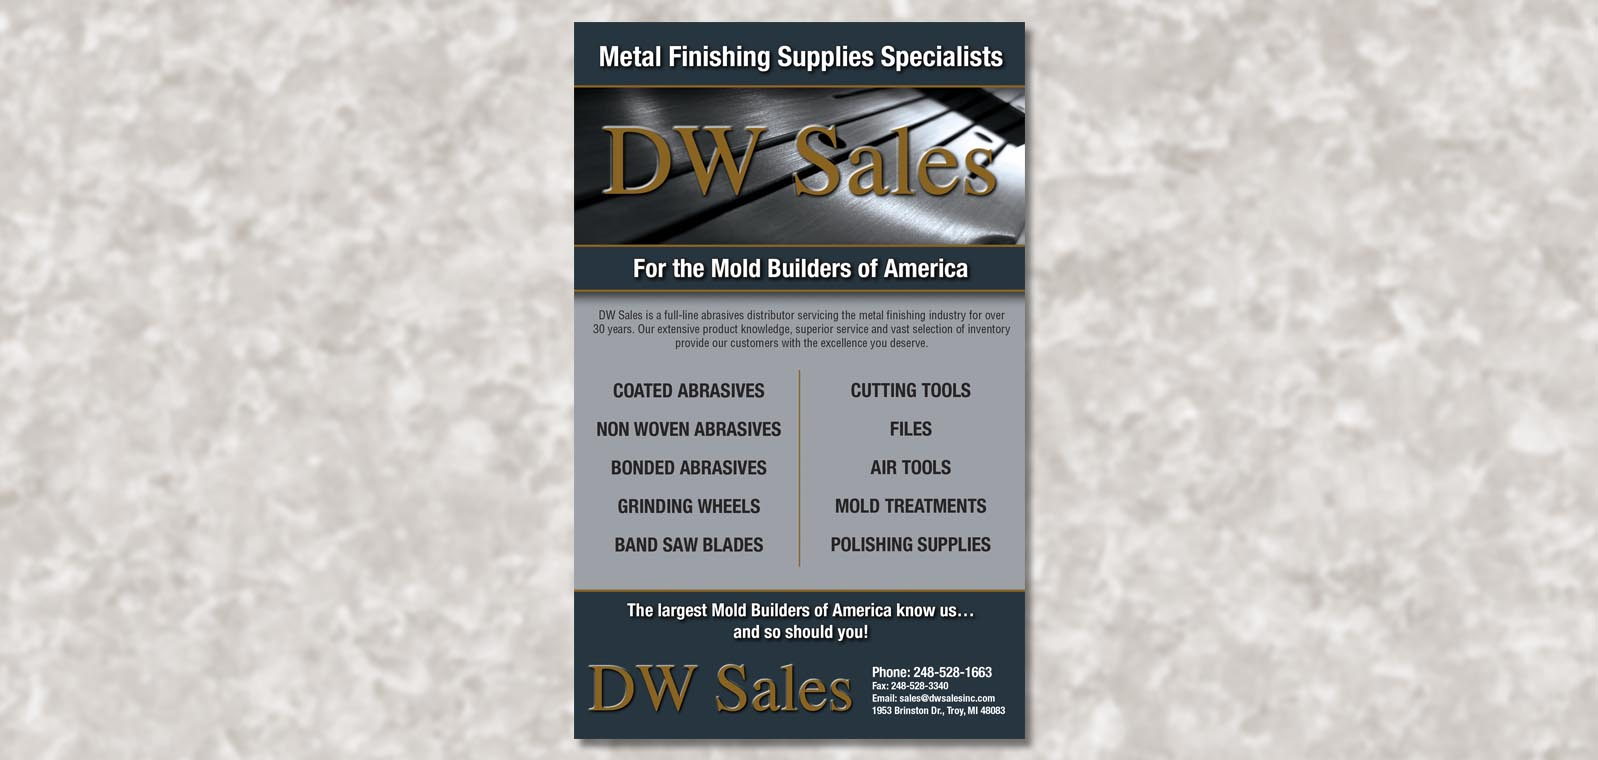 Publication Ad Graphic Design for the American Mold Builder Association, by Roselle Graphic Designer Controlled Color, Inc.